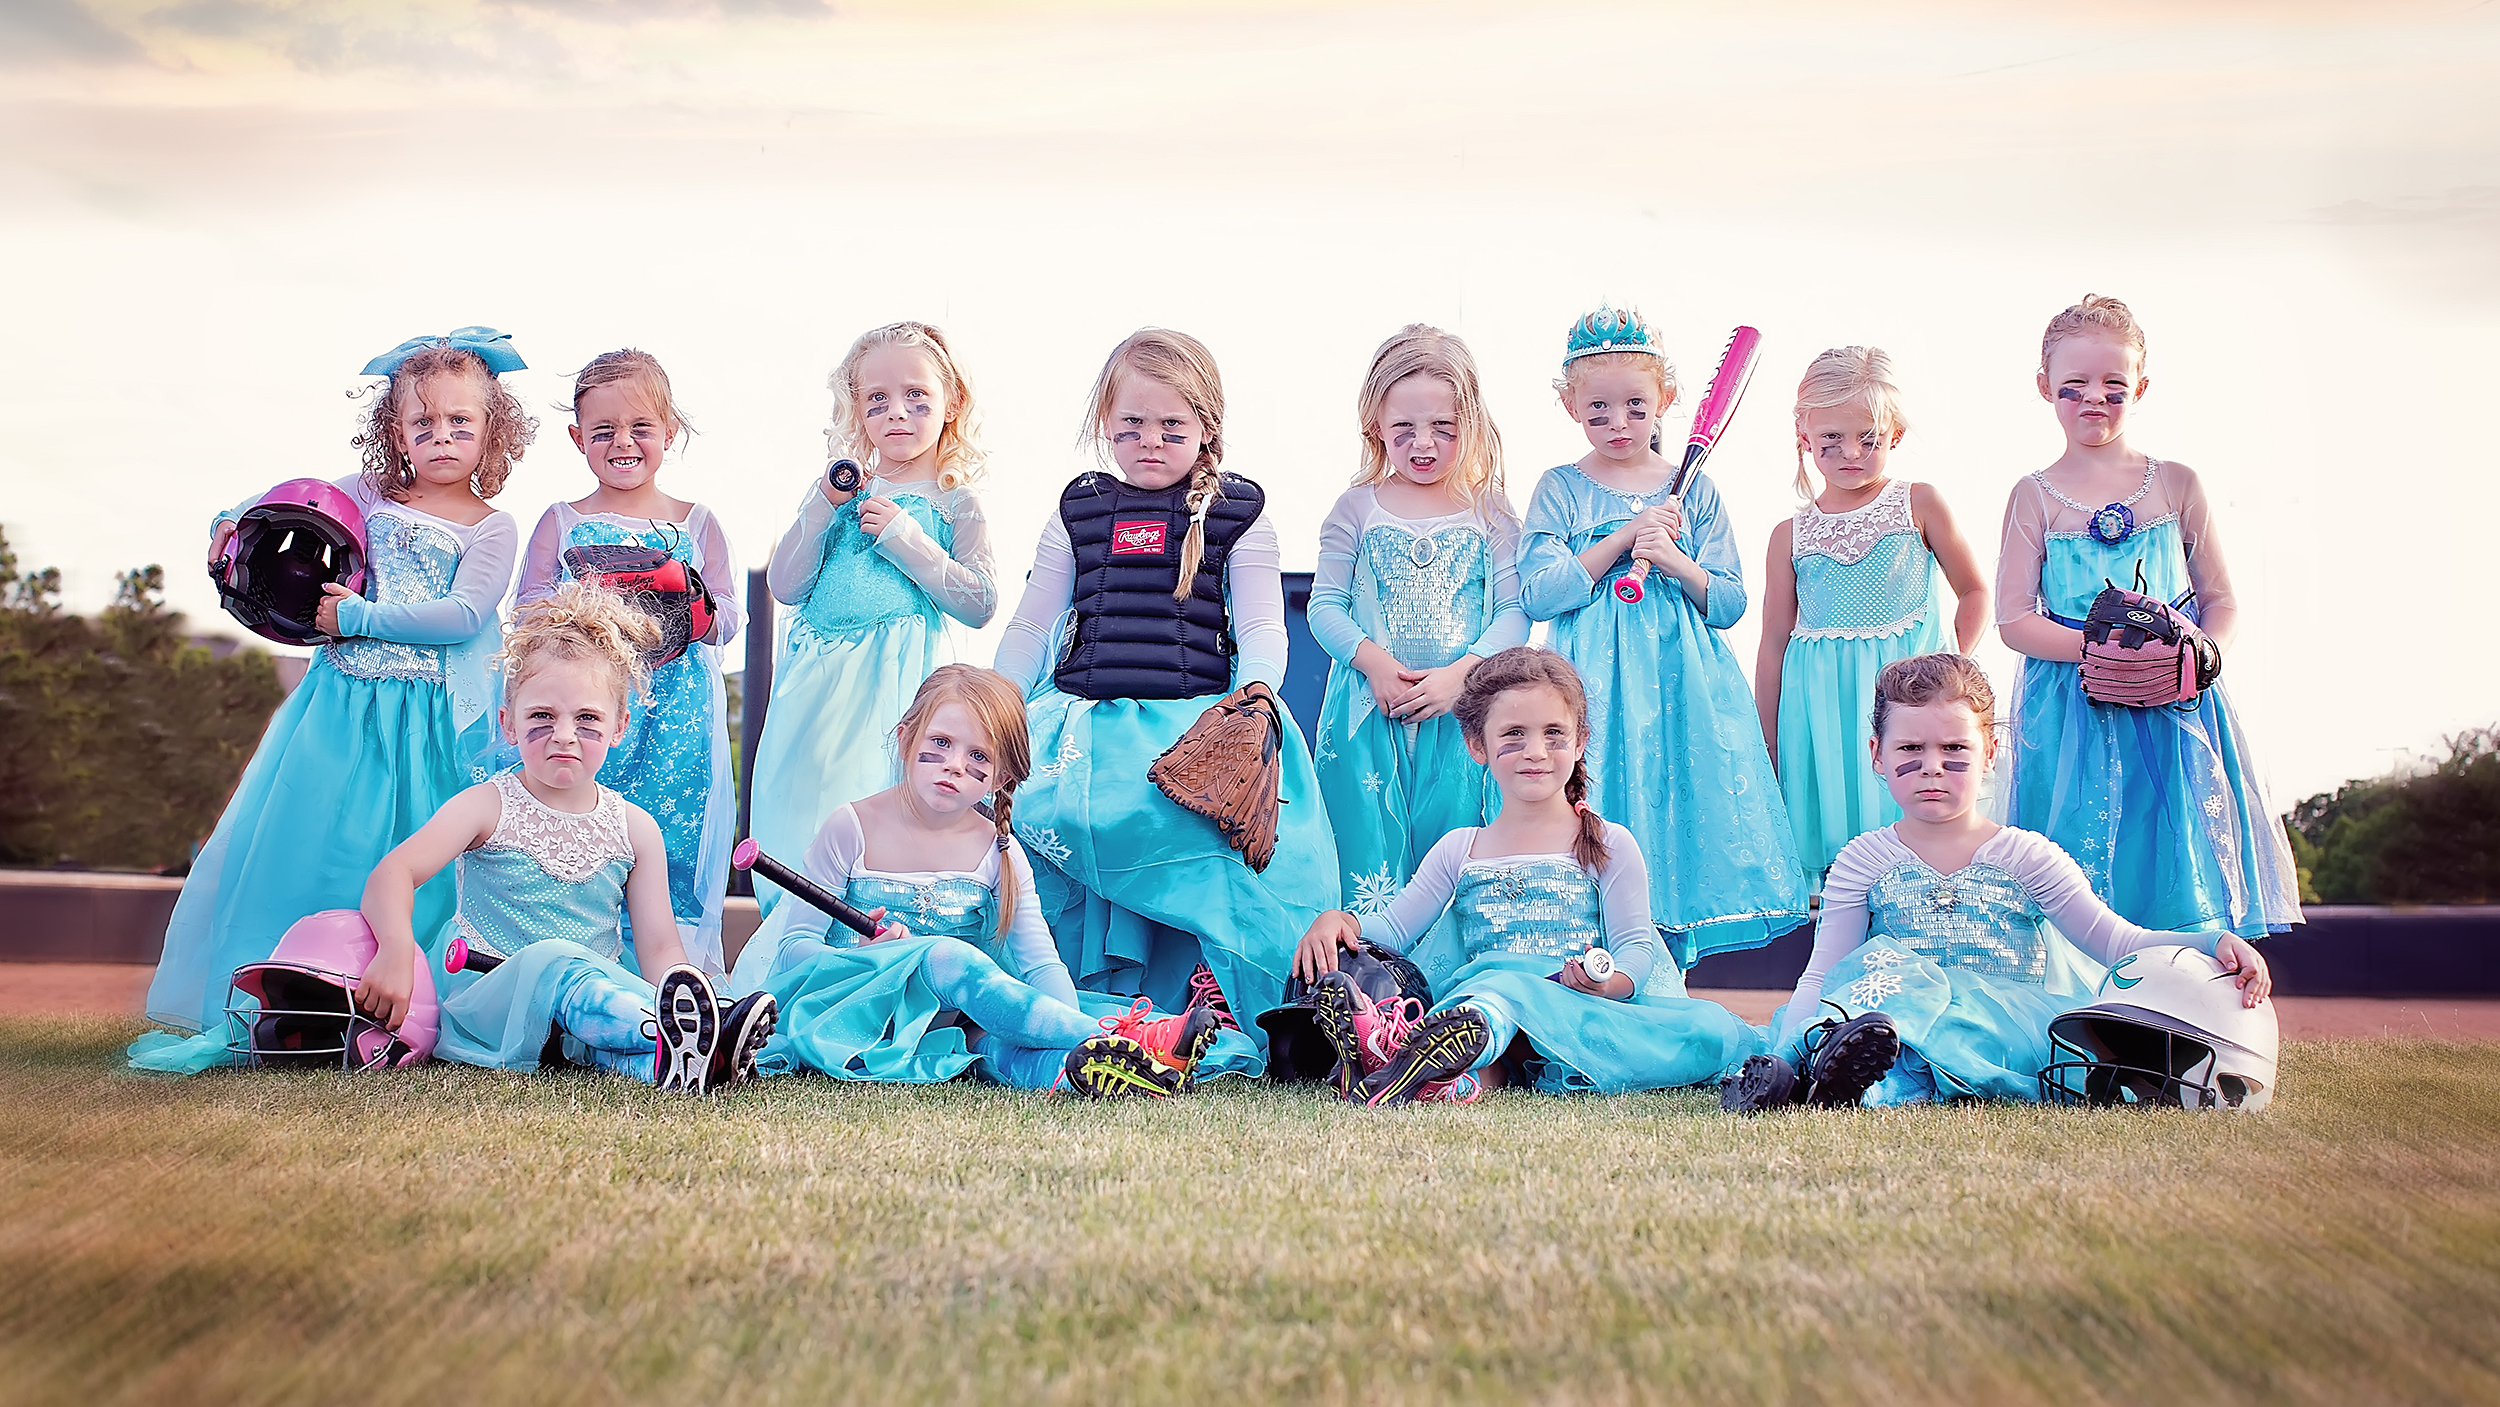 Frozen Inspired Team Picture Sends Empowering Message